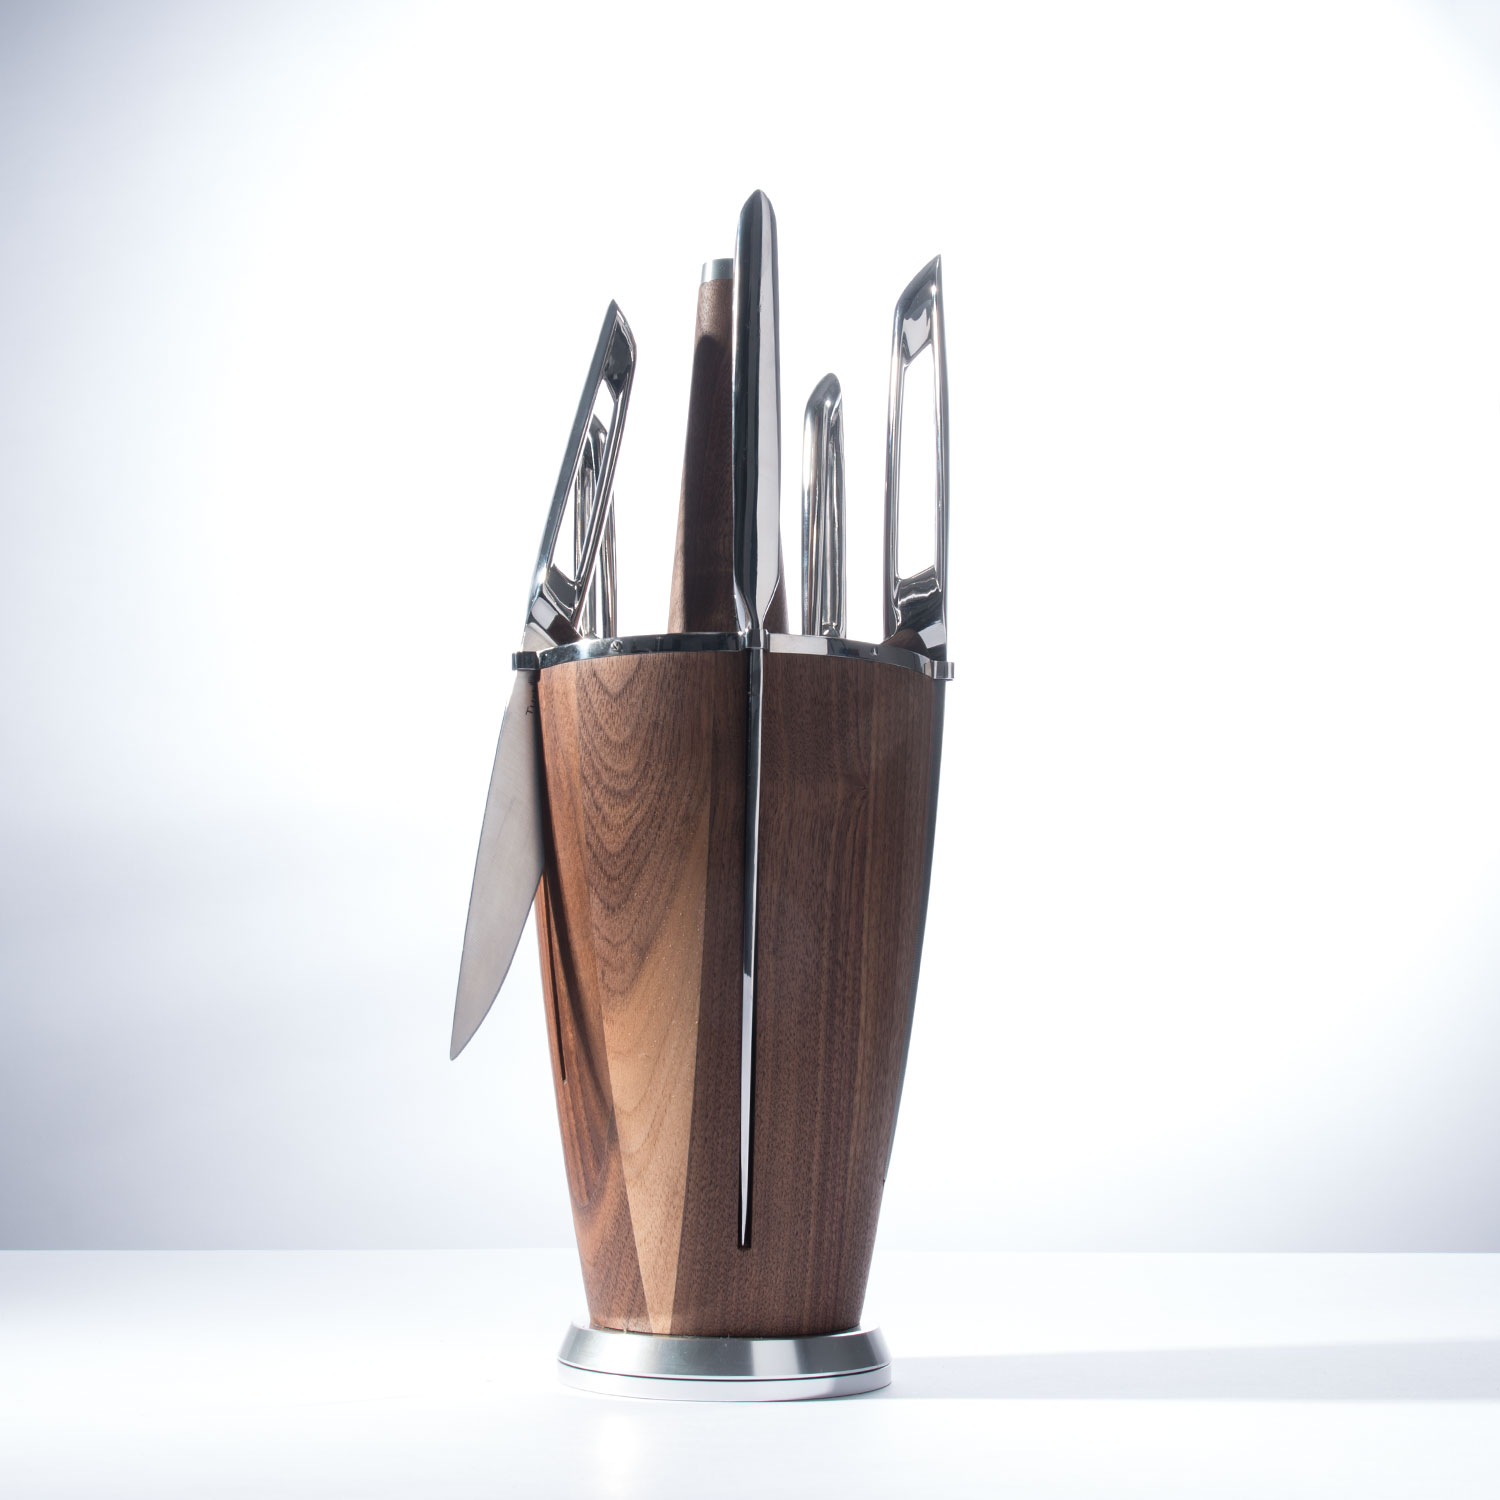 modern knife set modern knife set  - piece knife set with sharpening steel turbineusa touch of modern